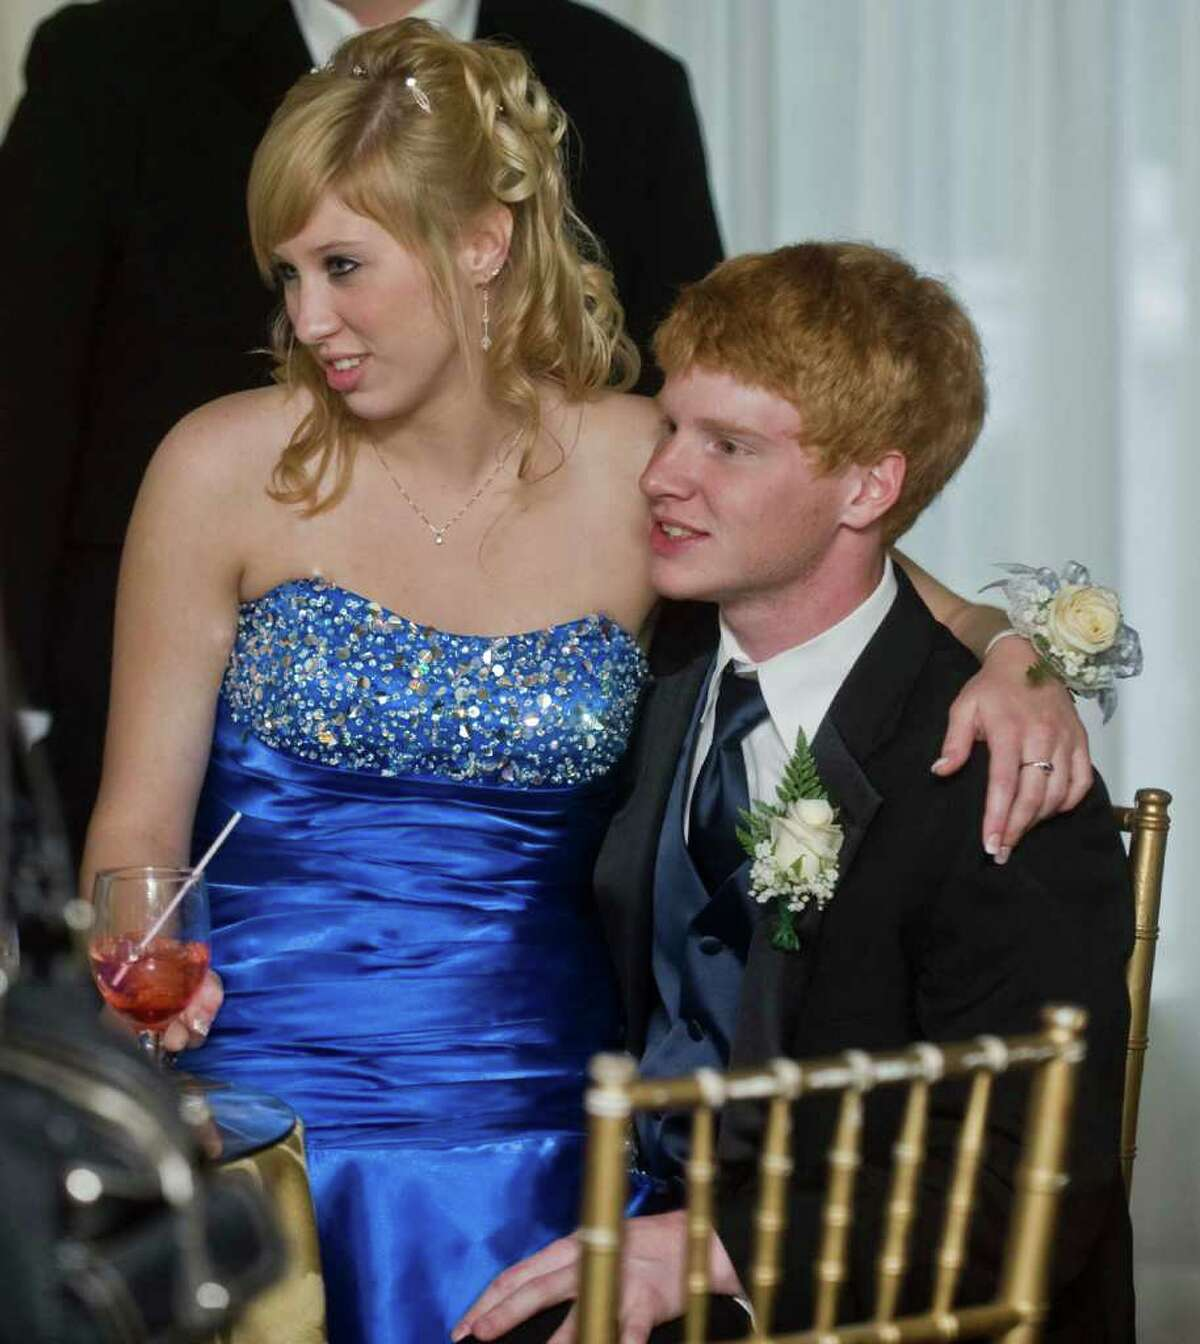 Abbott Tech seniors Ashley Nusser and Andrew Sawyer at the Abbott Tech senior prom held at the Fox Hill Inn in Brookfield. Friday, May 20, 2011